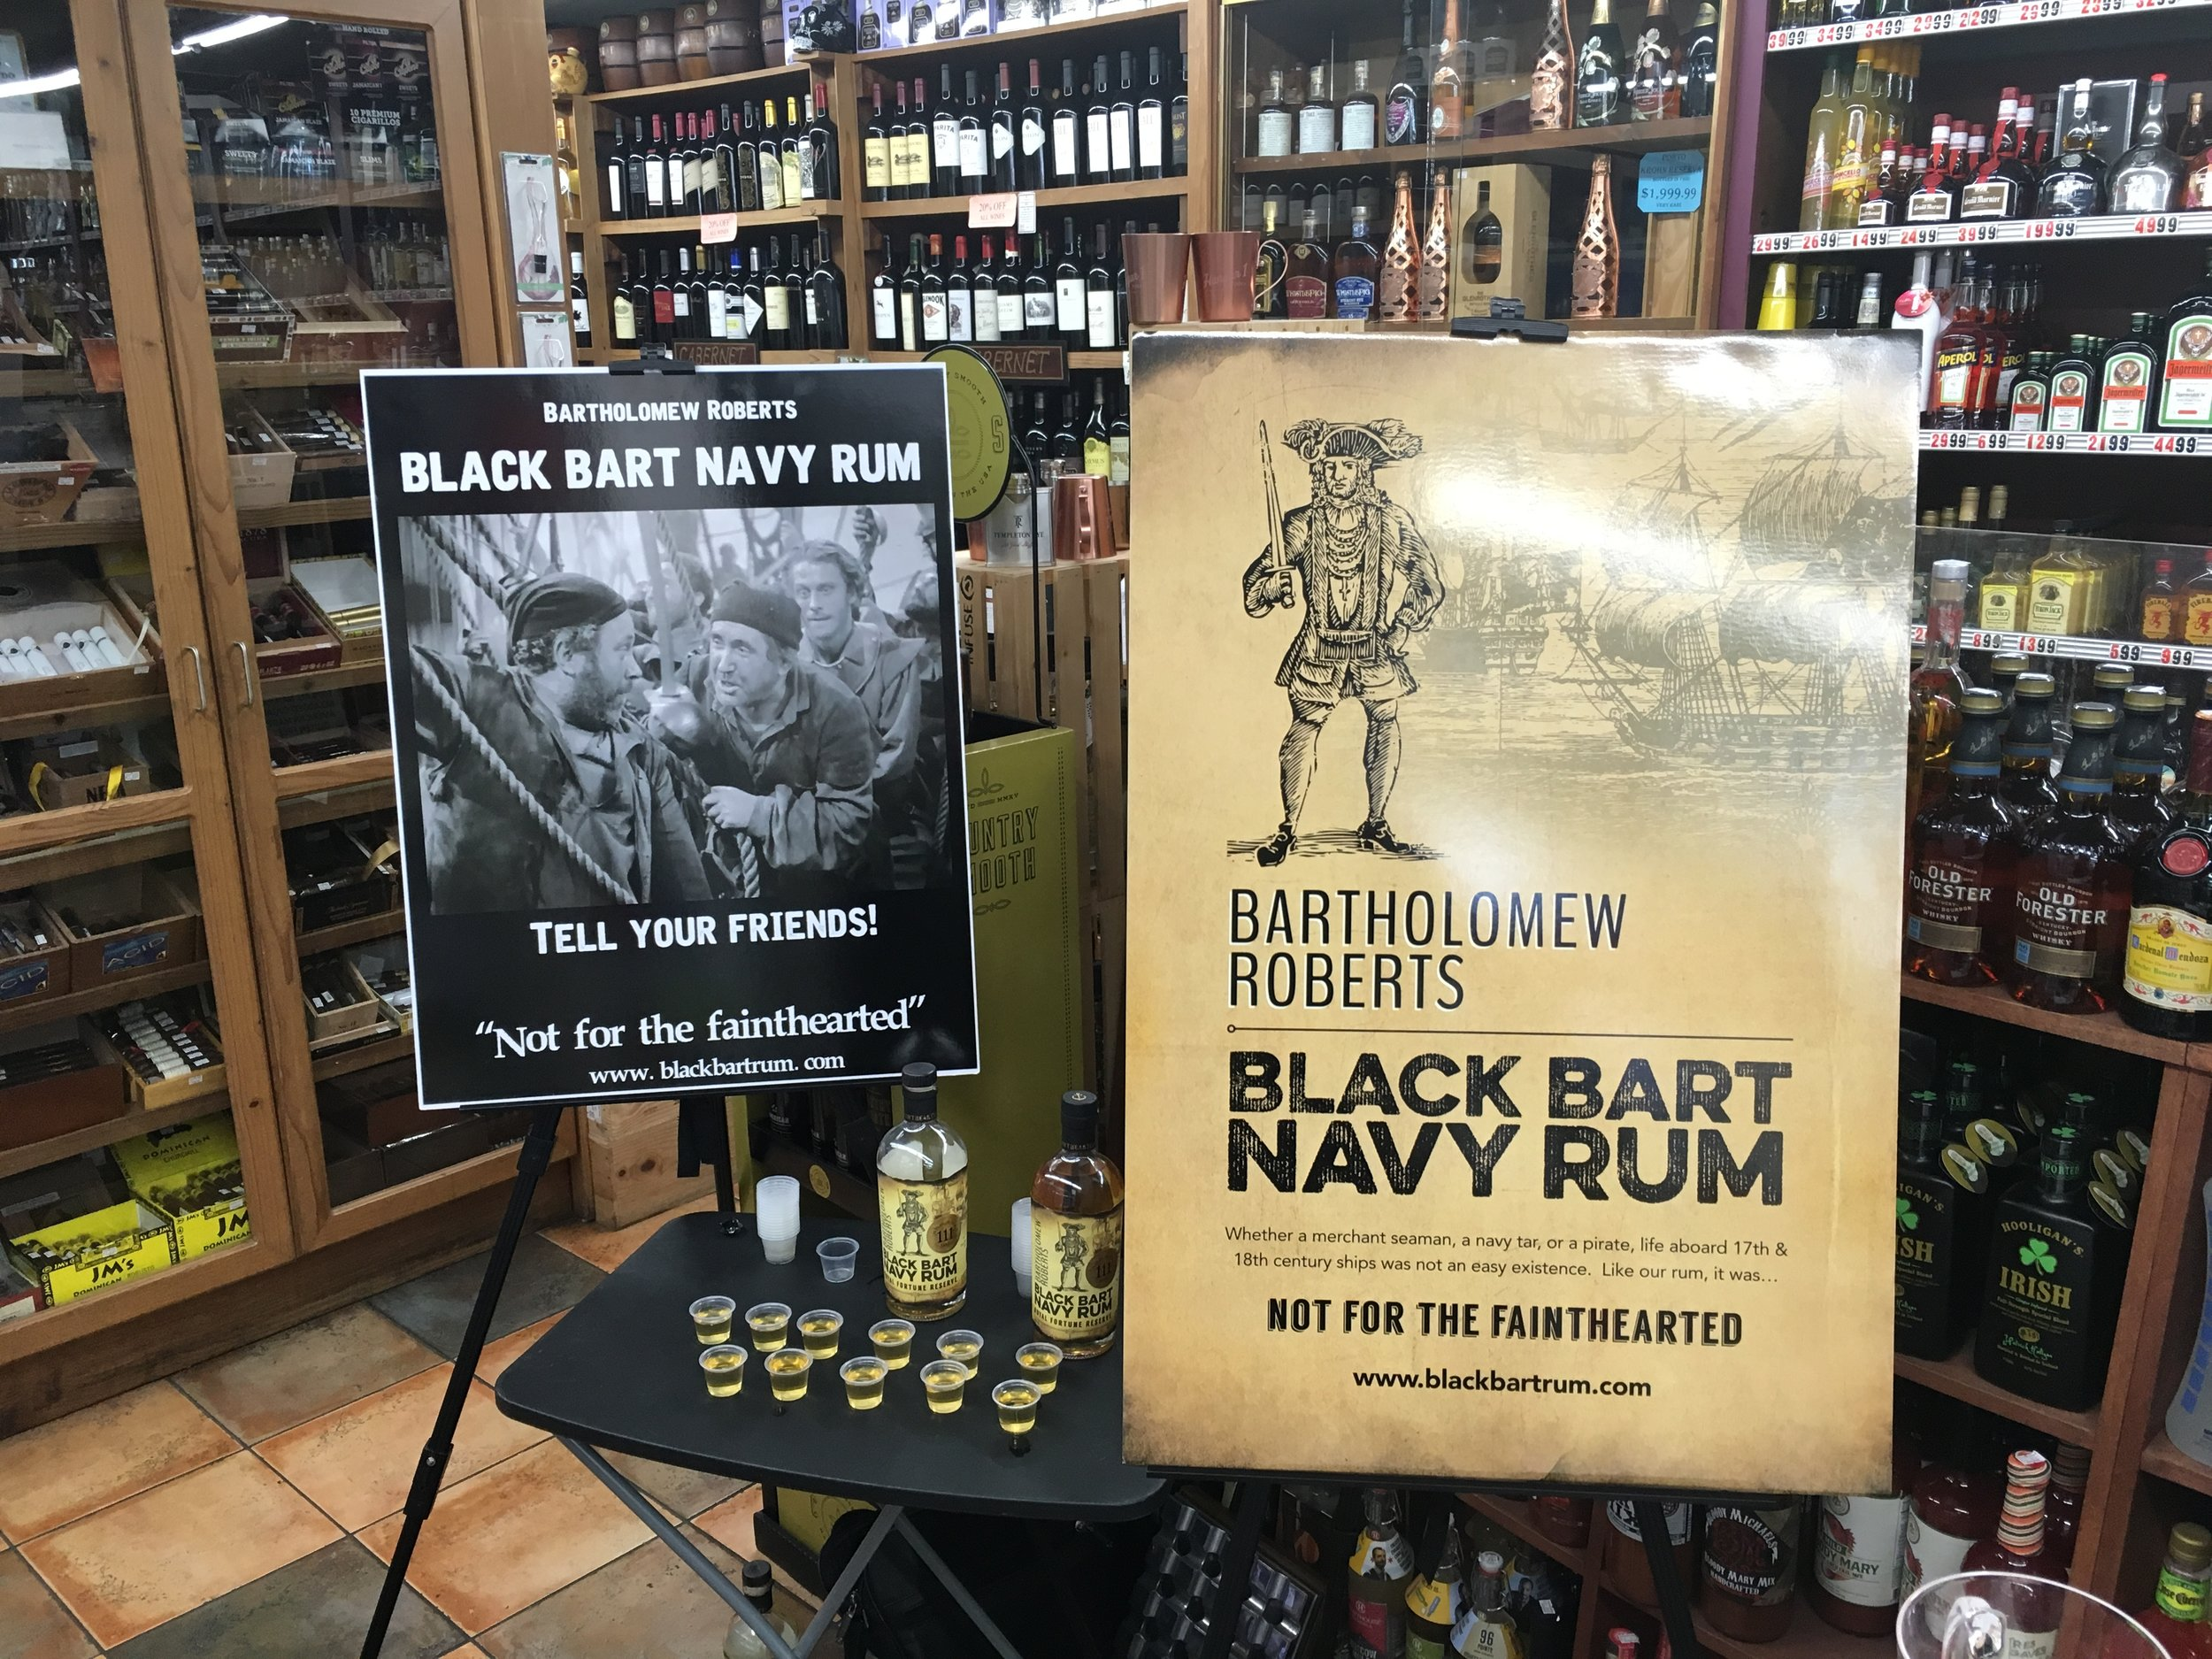 Texas Wine & Spirits (Carlsbad)